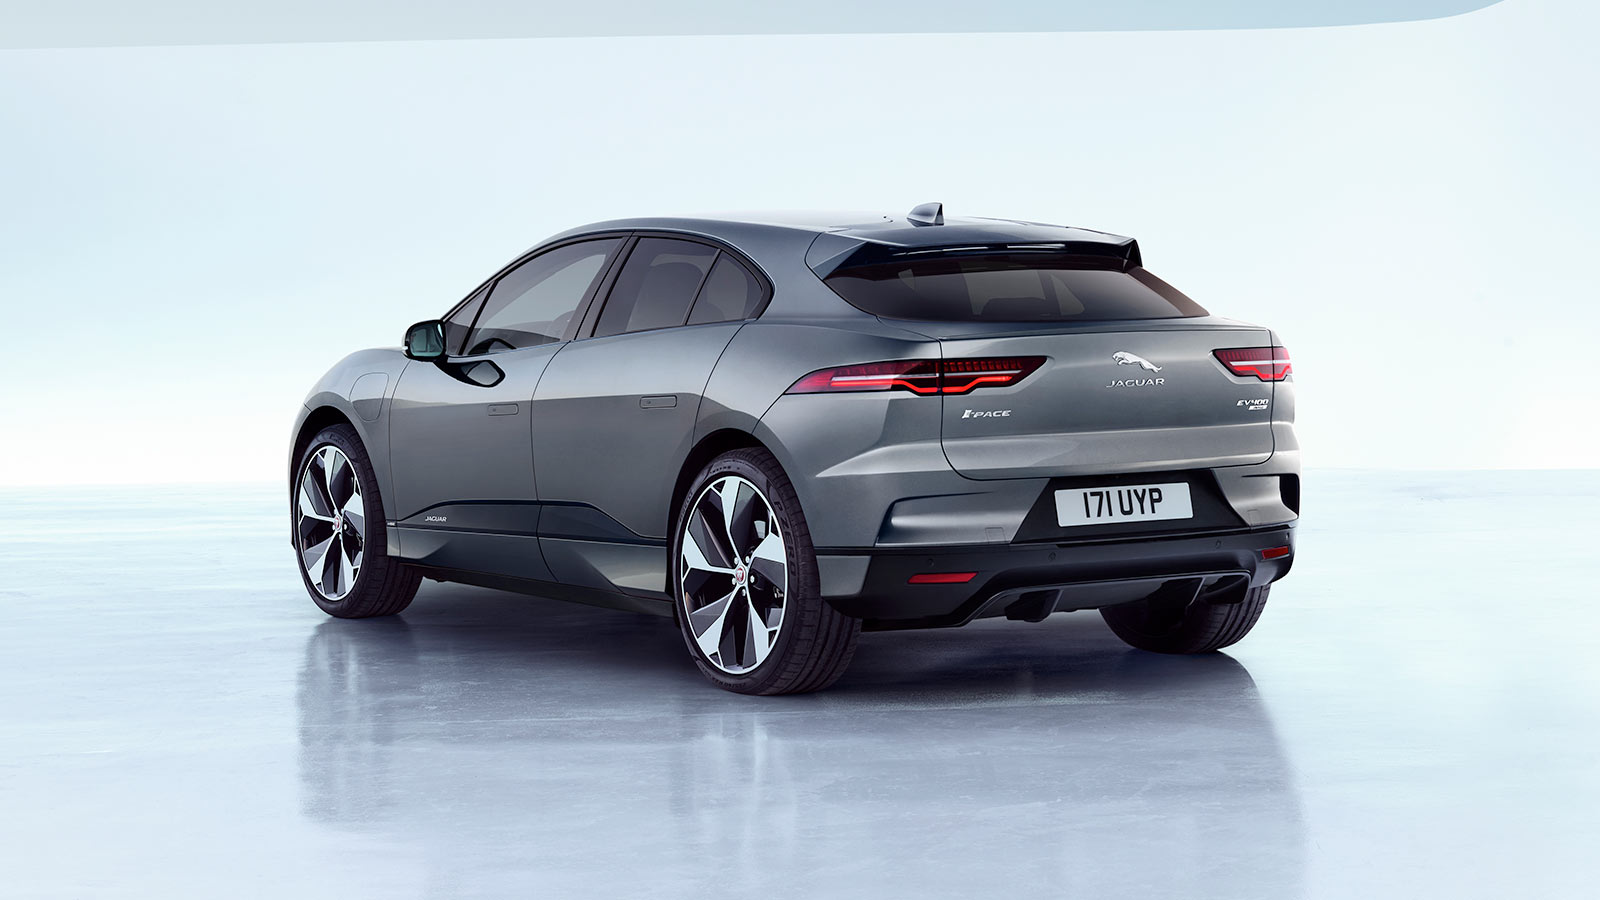 Jaguar I-Pace Rear 3/4 Angle.